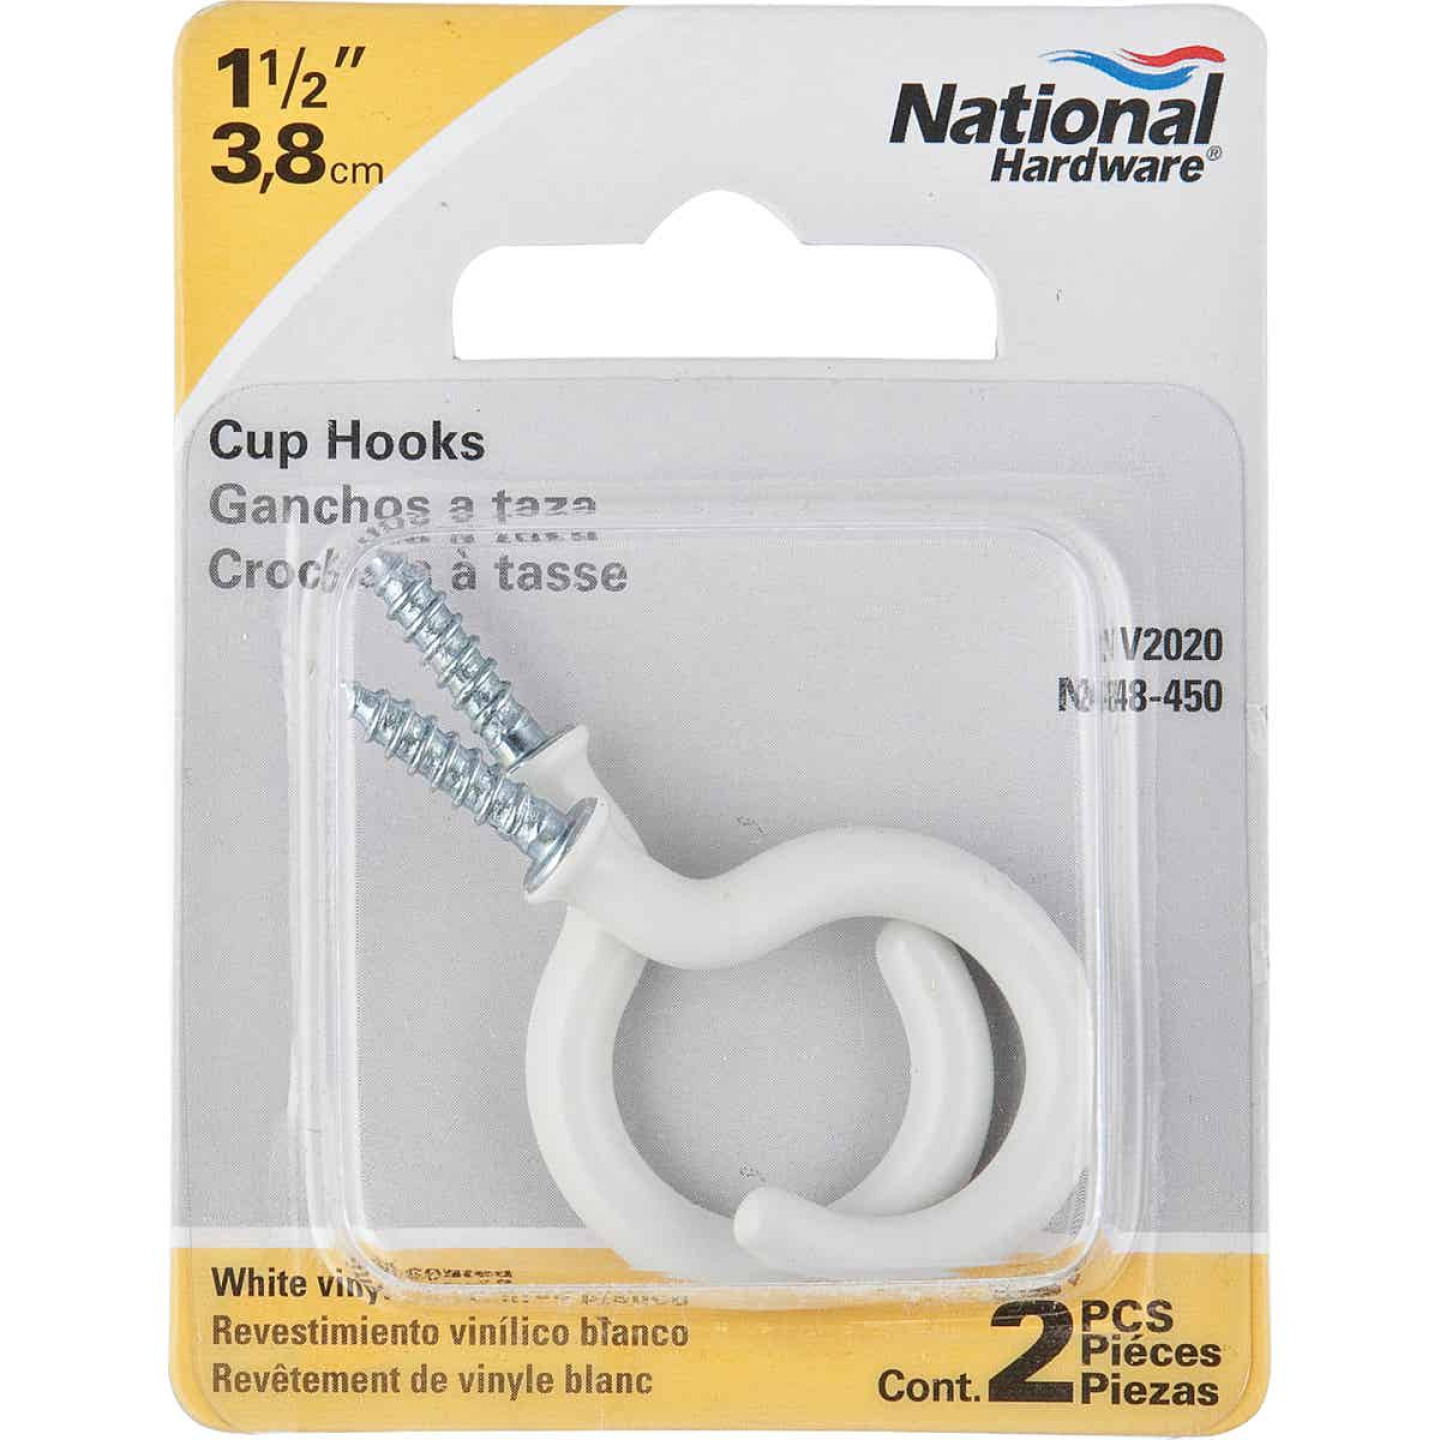 National 1-1/2 In. White Vinyl Cup Hook (2 Count) Image 2